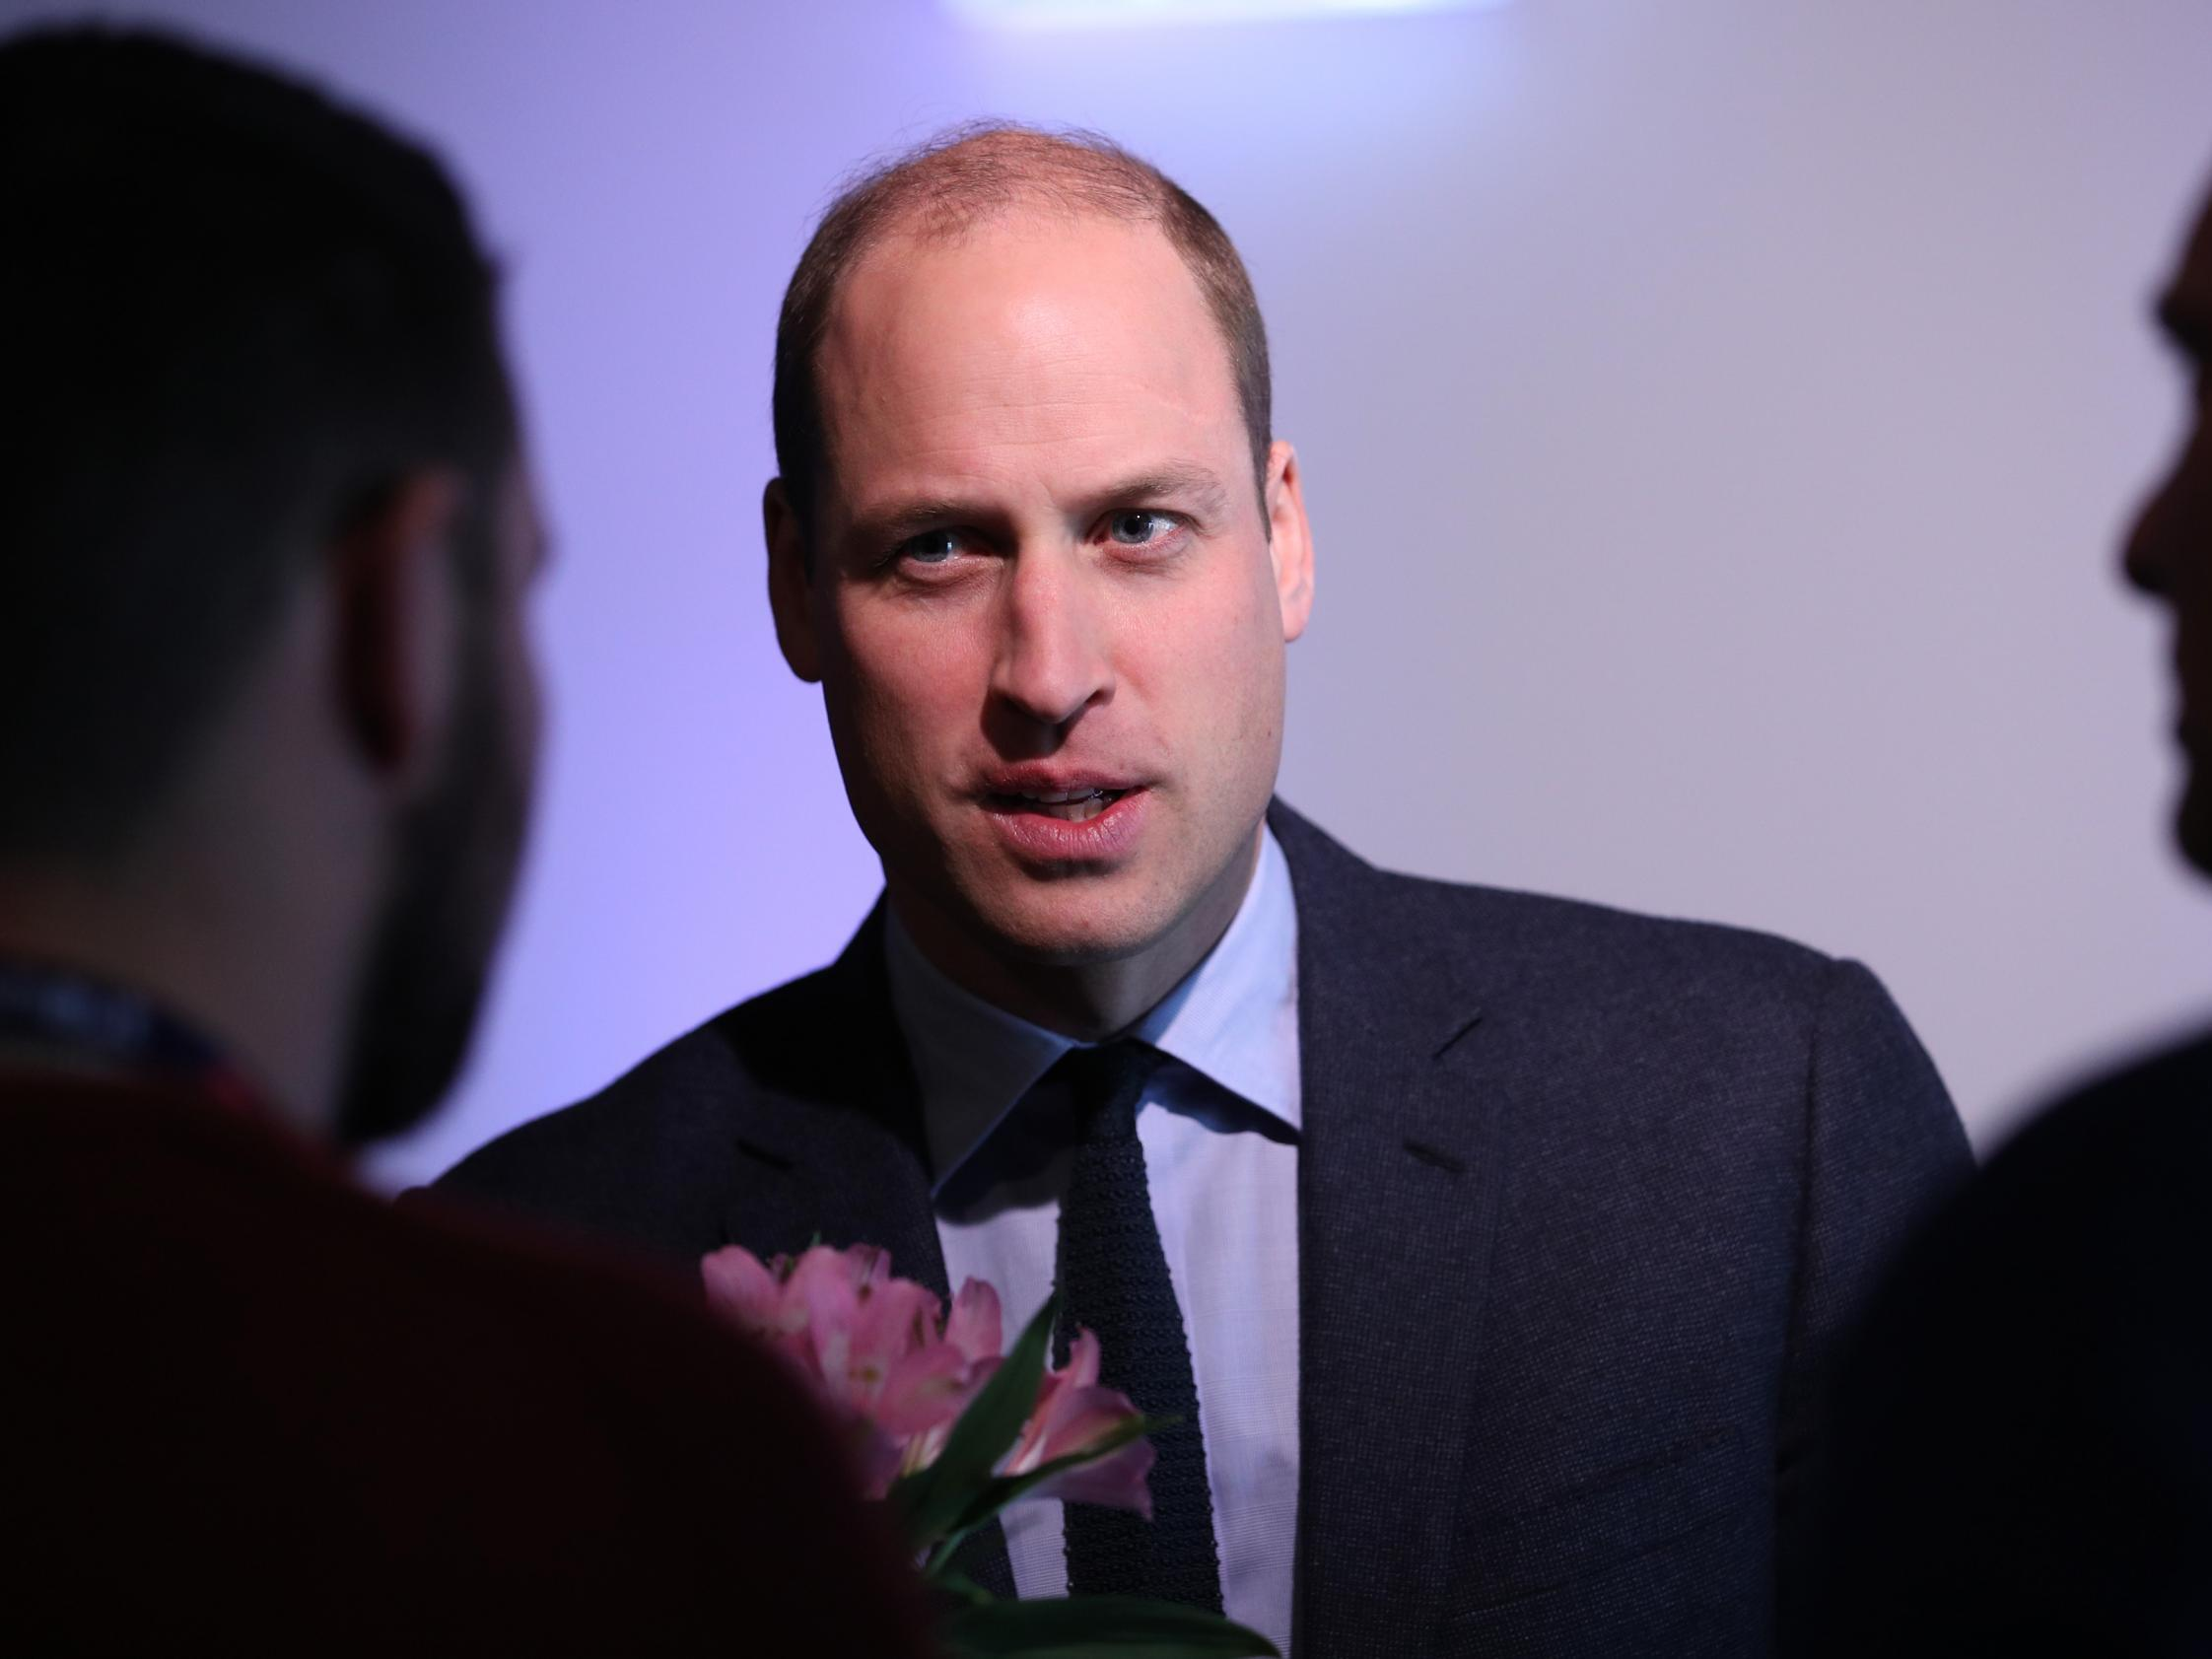 Prince William reveals he is helpline counsellor for people in crisis